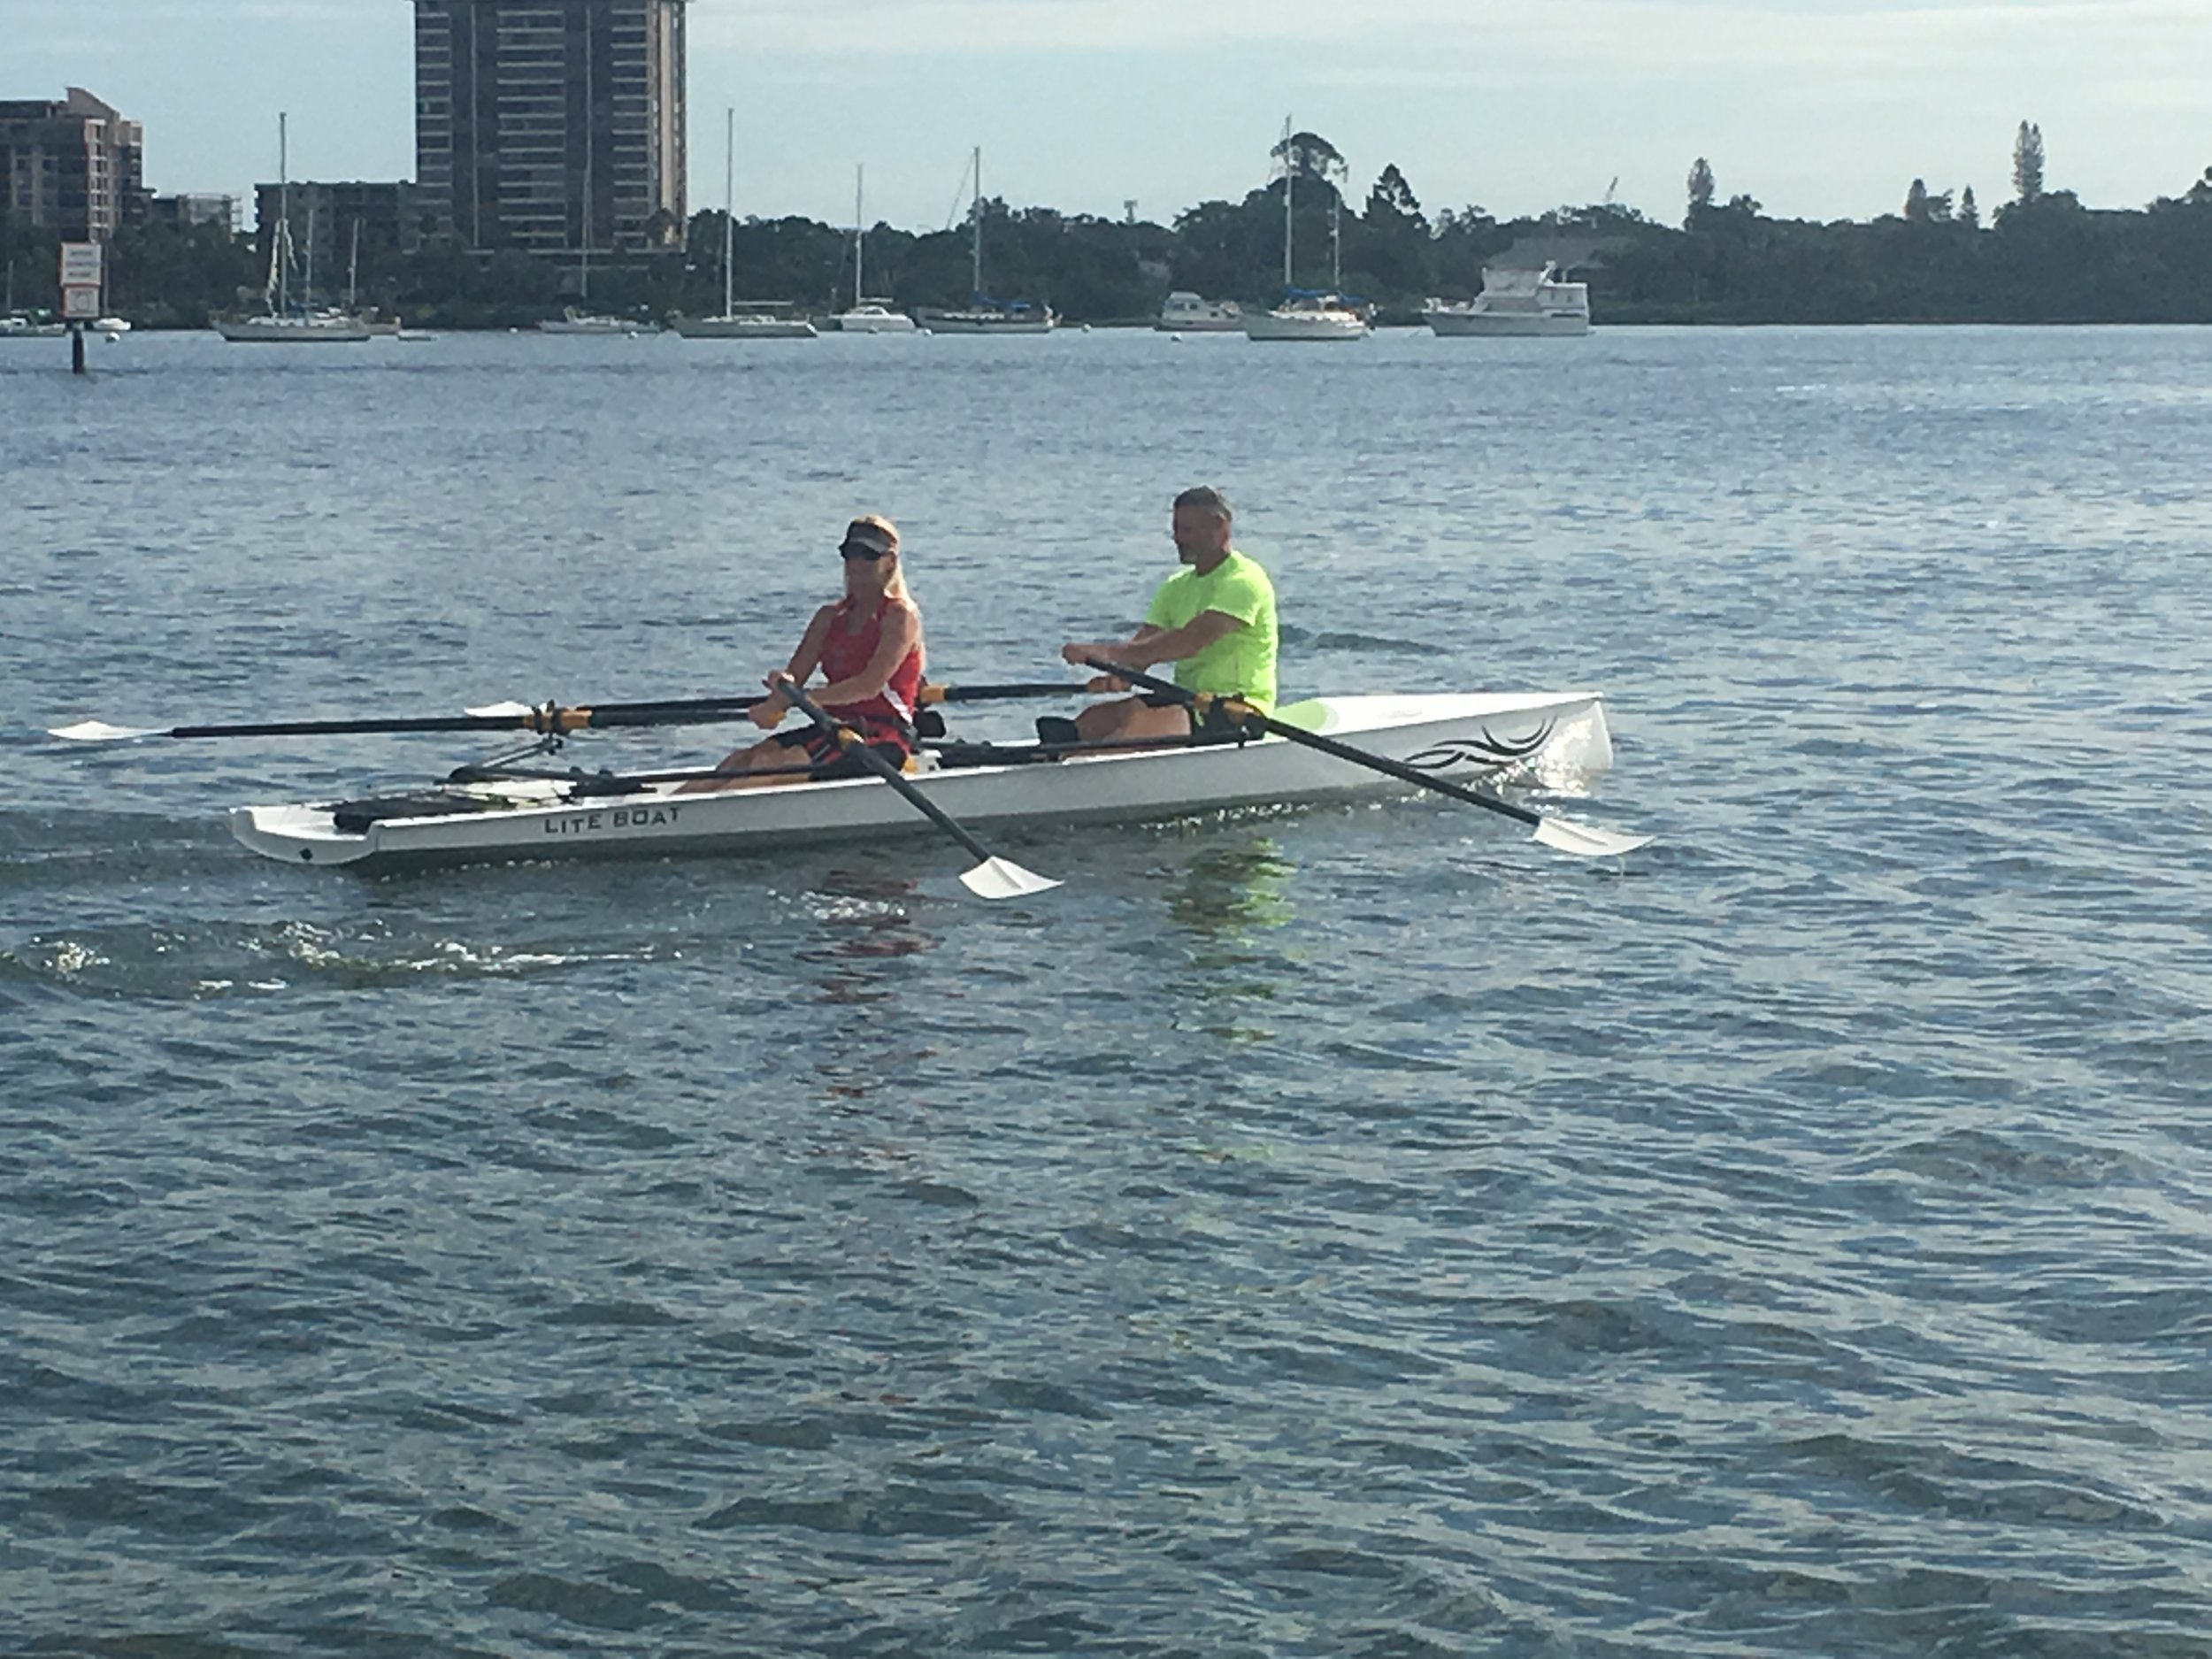 Demo Rows - Members of Lake County Rowing Association looking good while giving our LiteSport 2X a try.